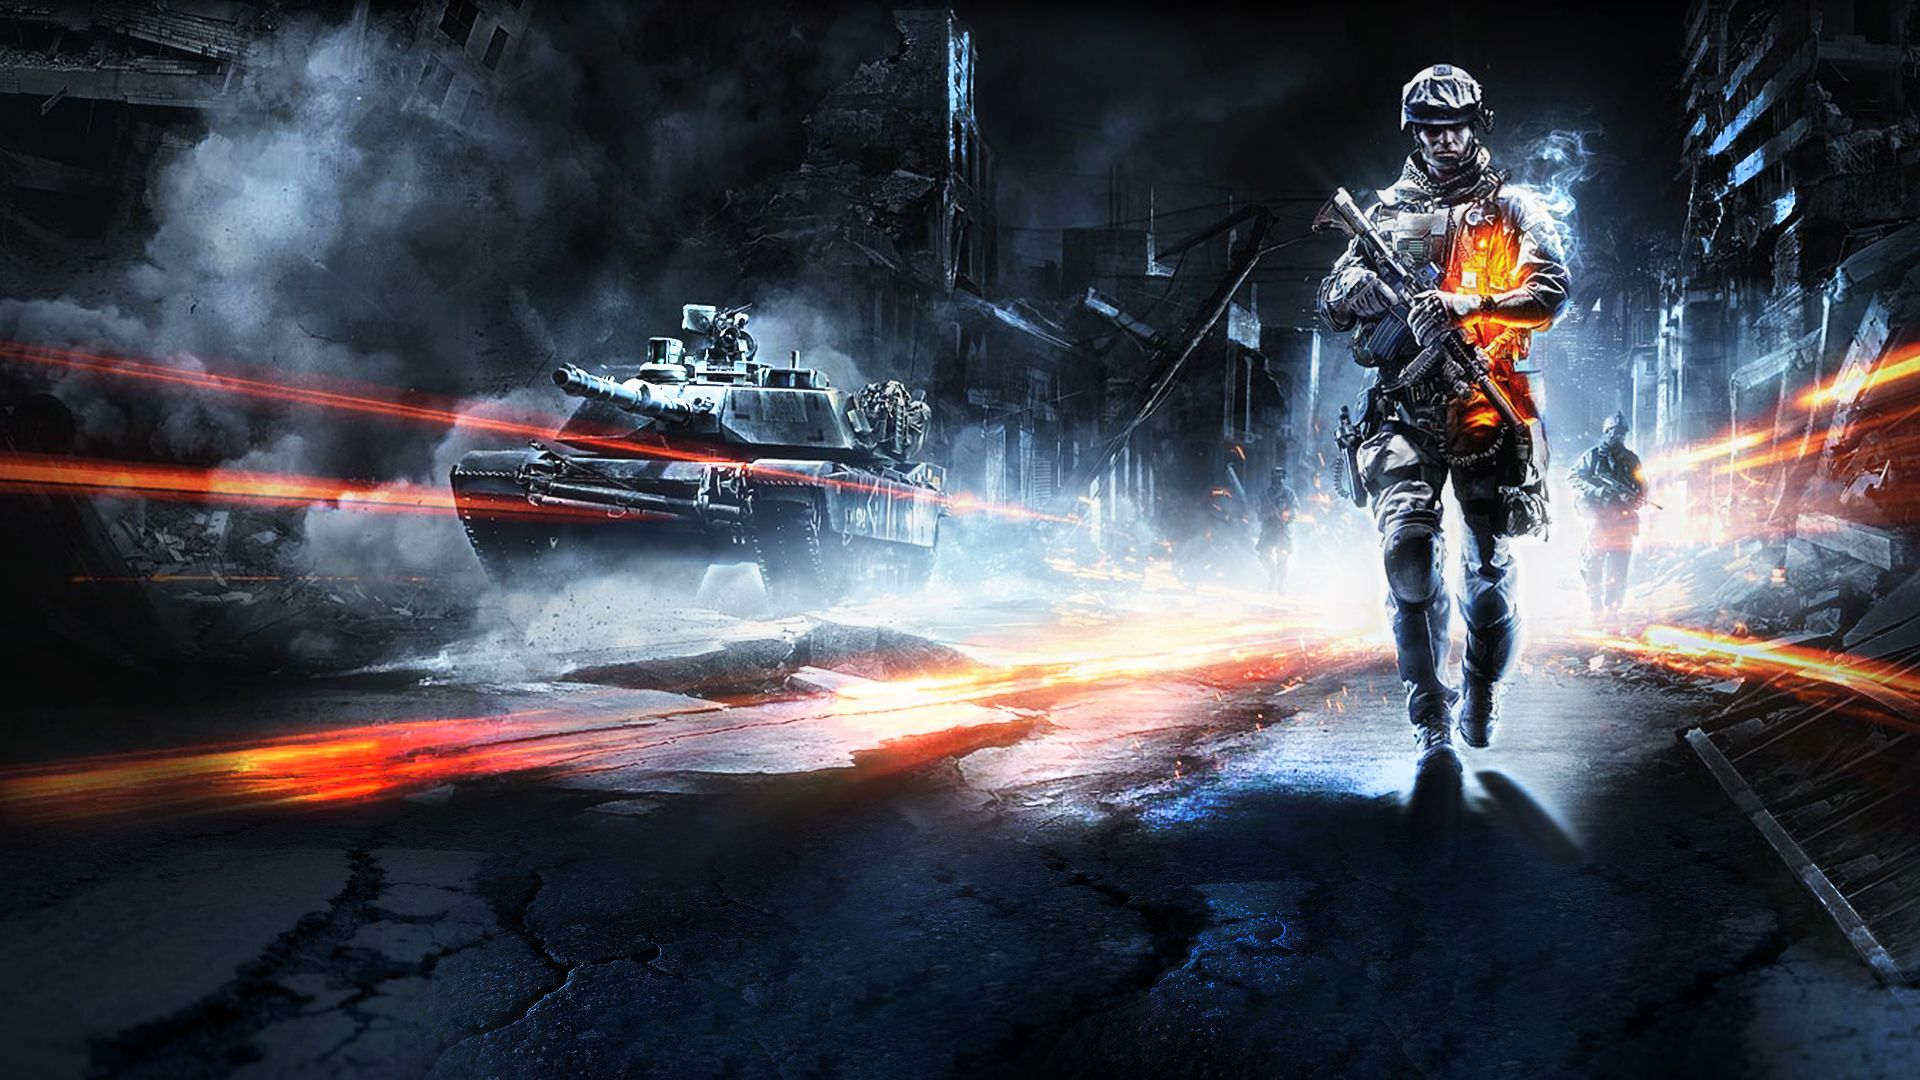 Battlefield 3 Wallpapers Top Free Battlefield 3